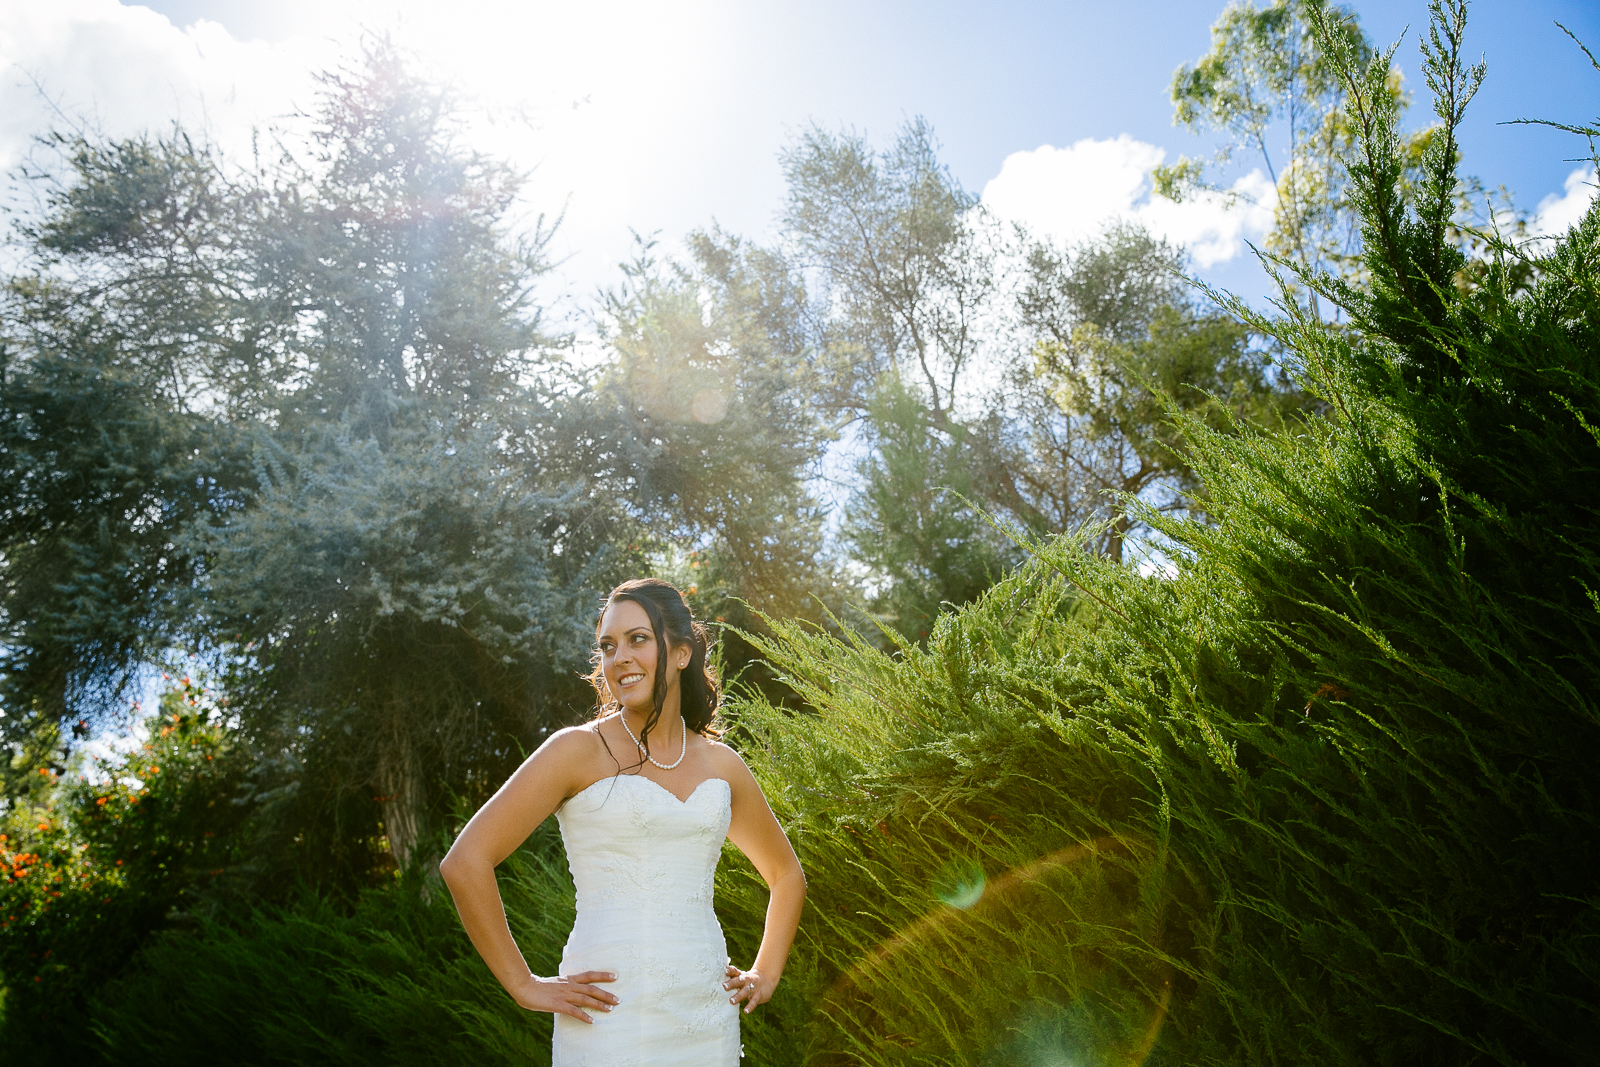 SAMANTHA_&_LUCAS_LEO_CARRILLO_LEAF_WEDDING_PHOTOGRAPHY_20147X9A8192.JPG